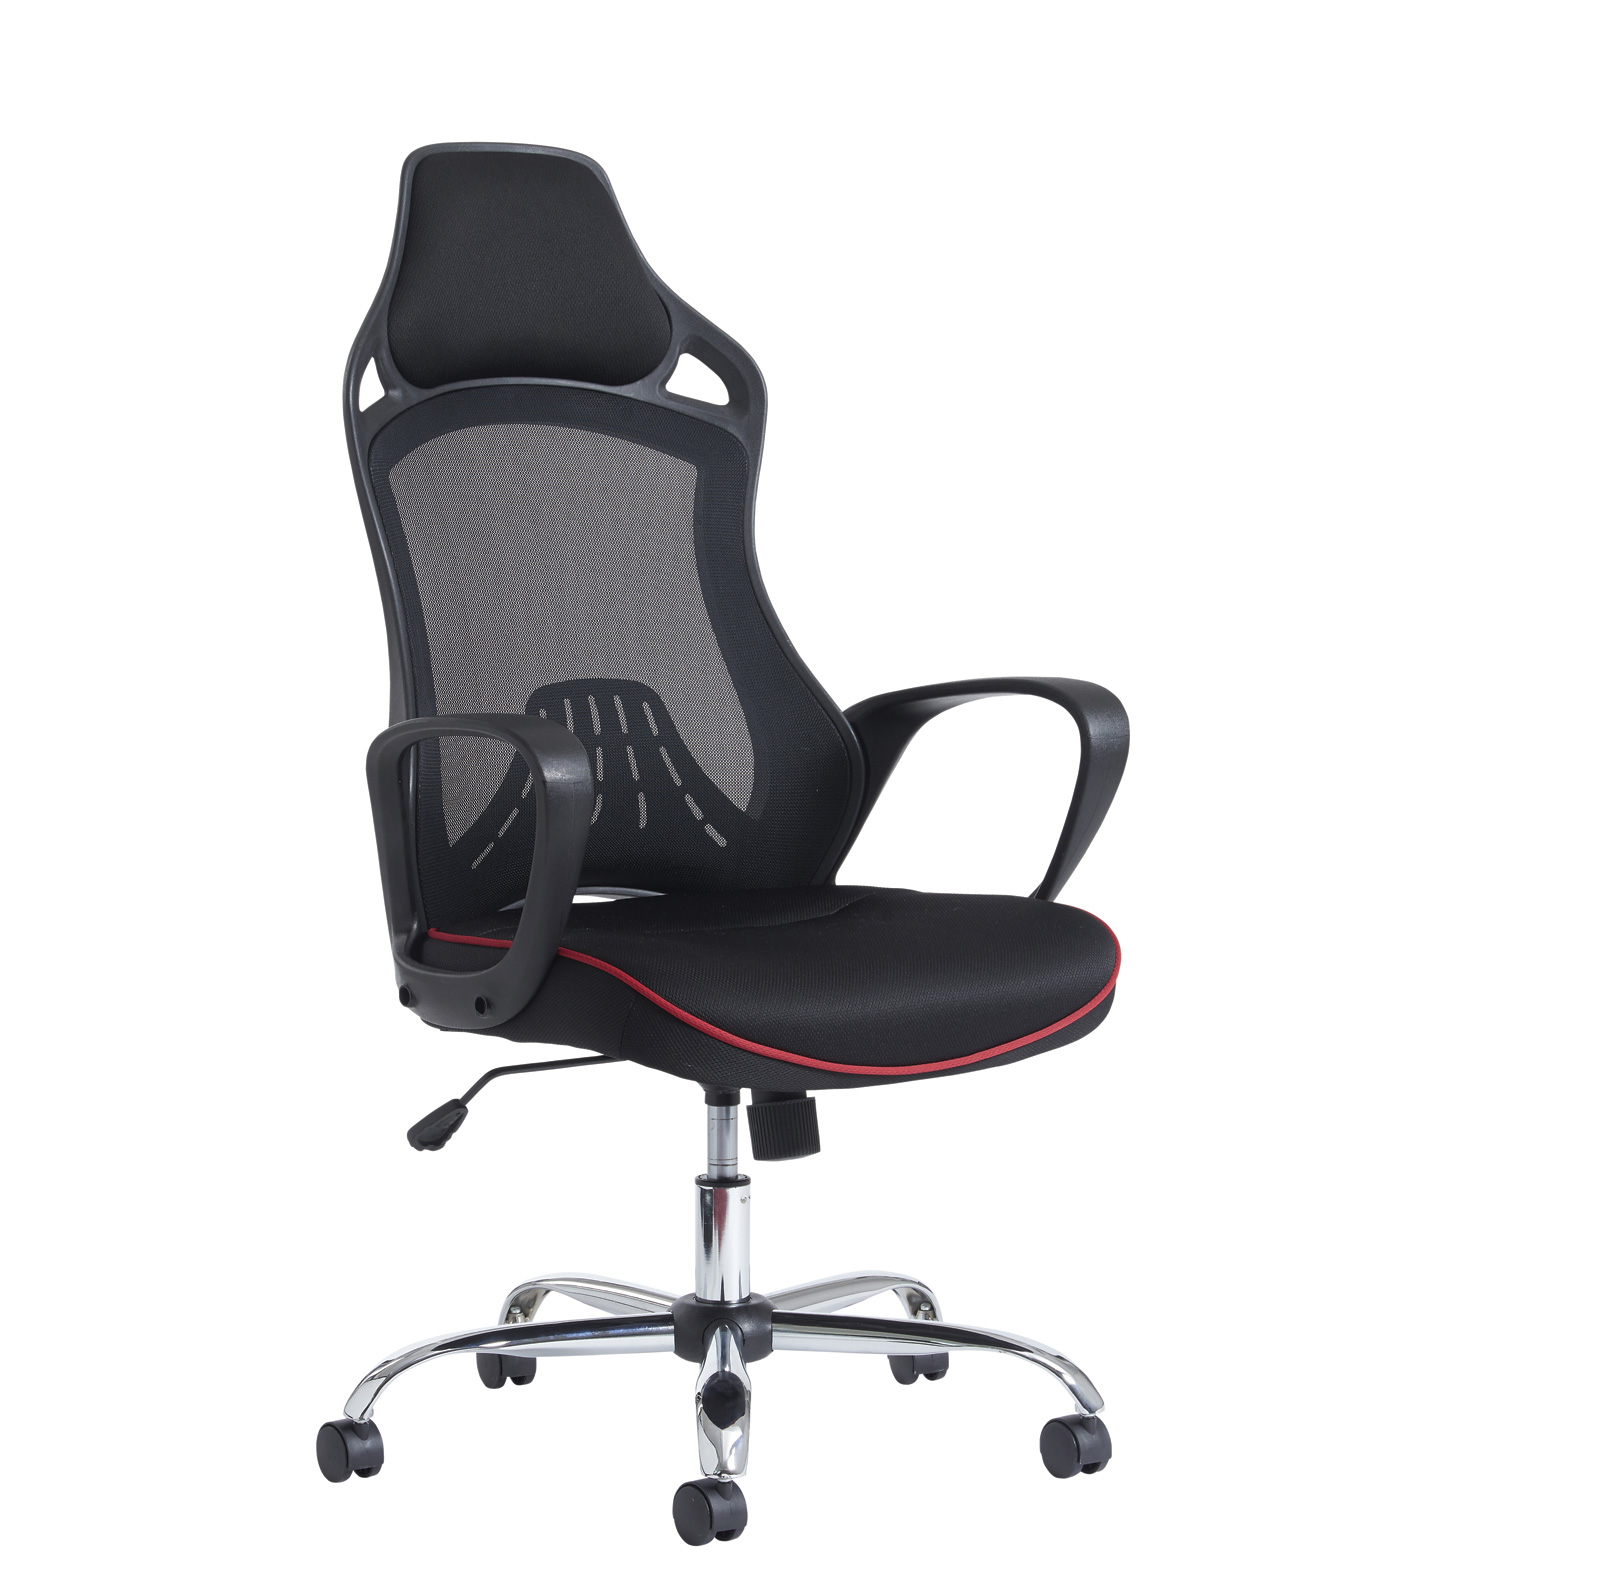 Image for Andretti High Mesh Back Chair - Black